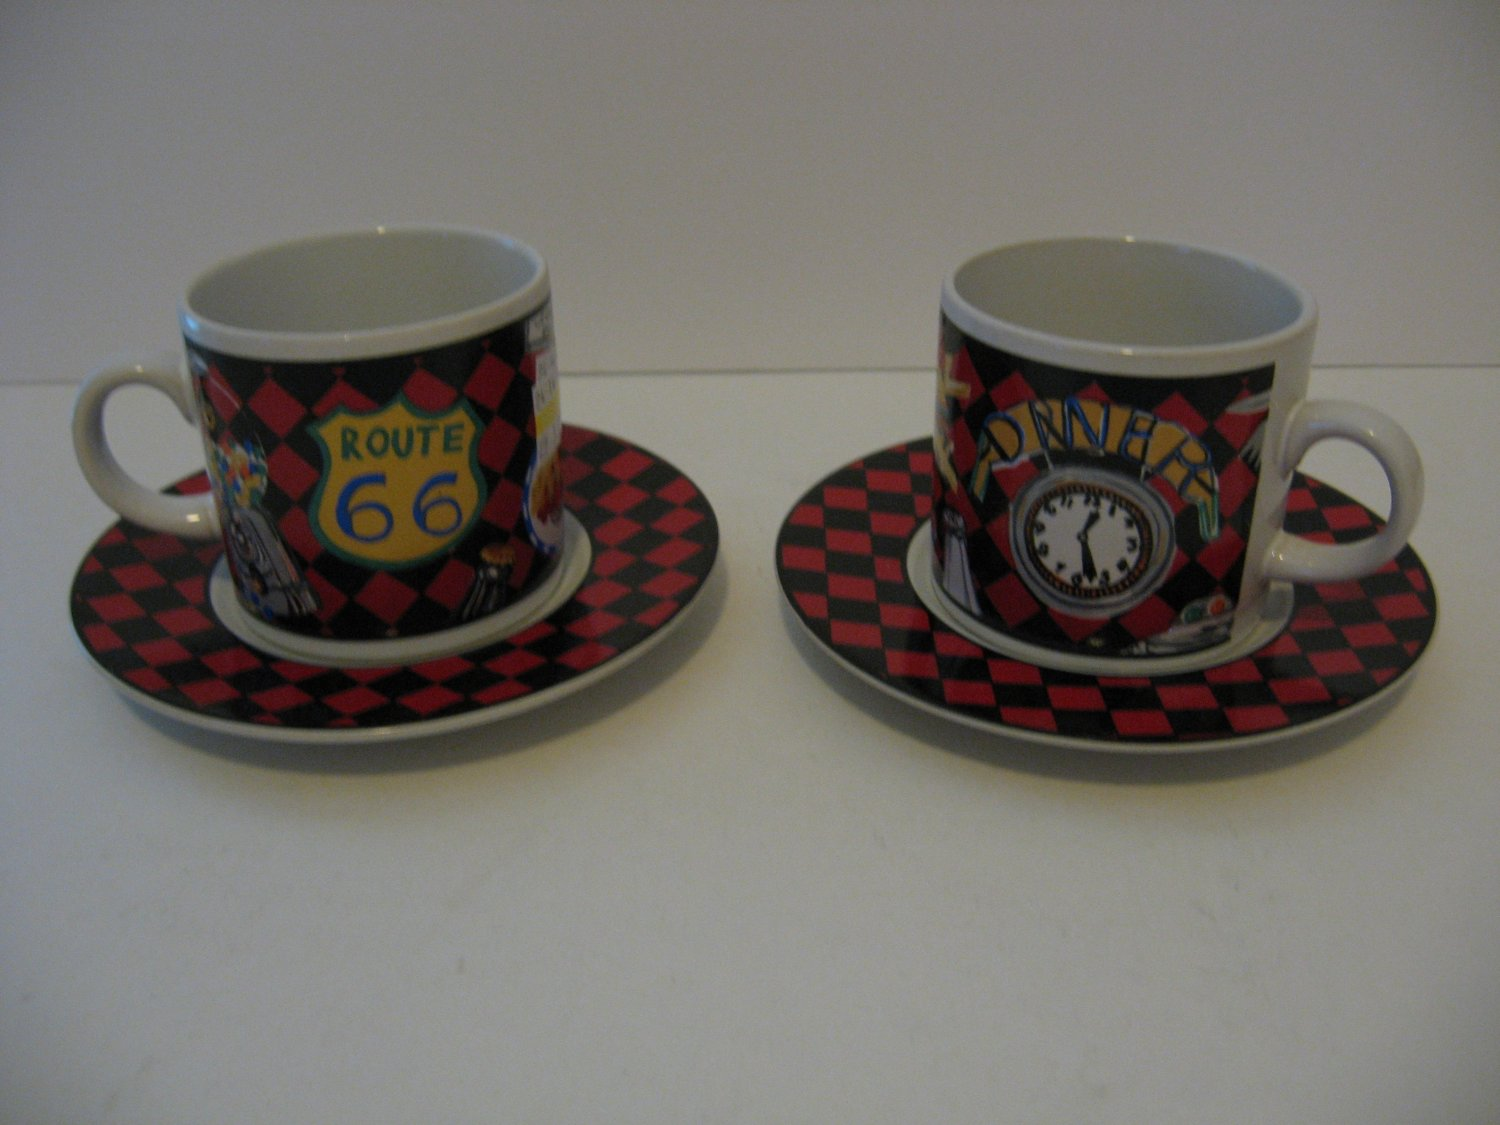 Vintage Sakura Roadside Route 66 coffee mug/saucer demitasse set of 2 - 1993